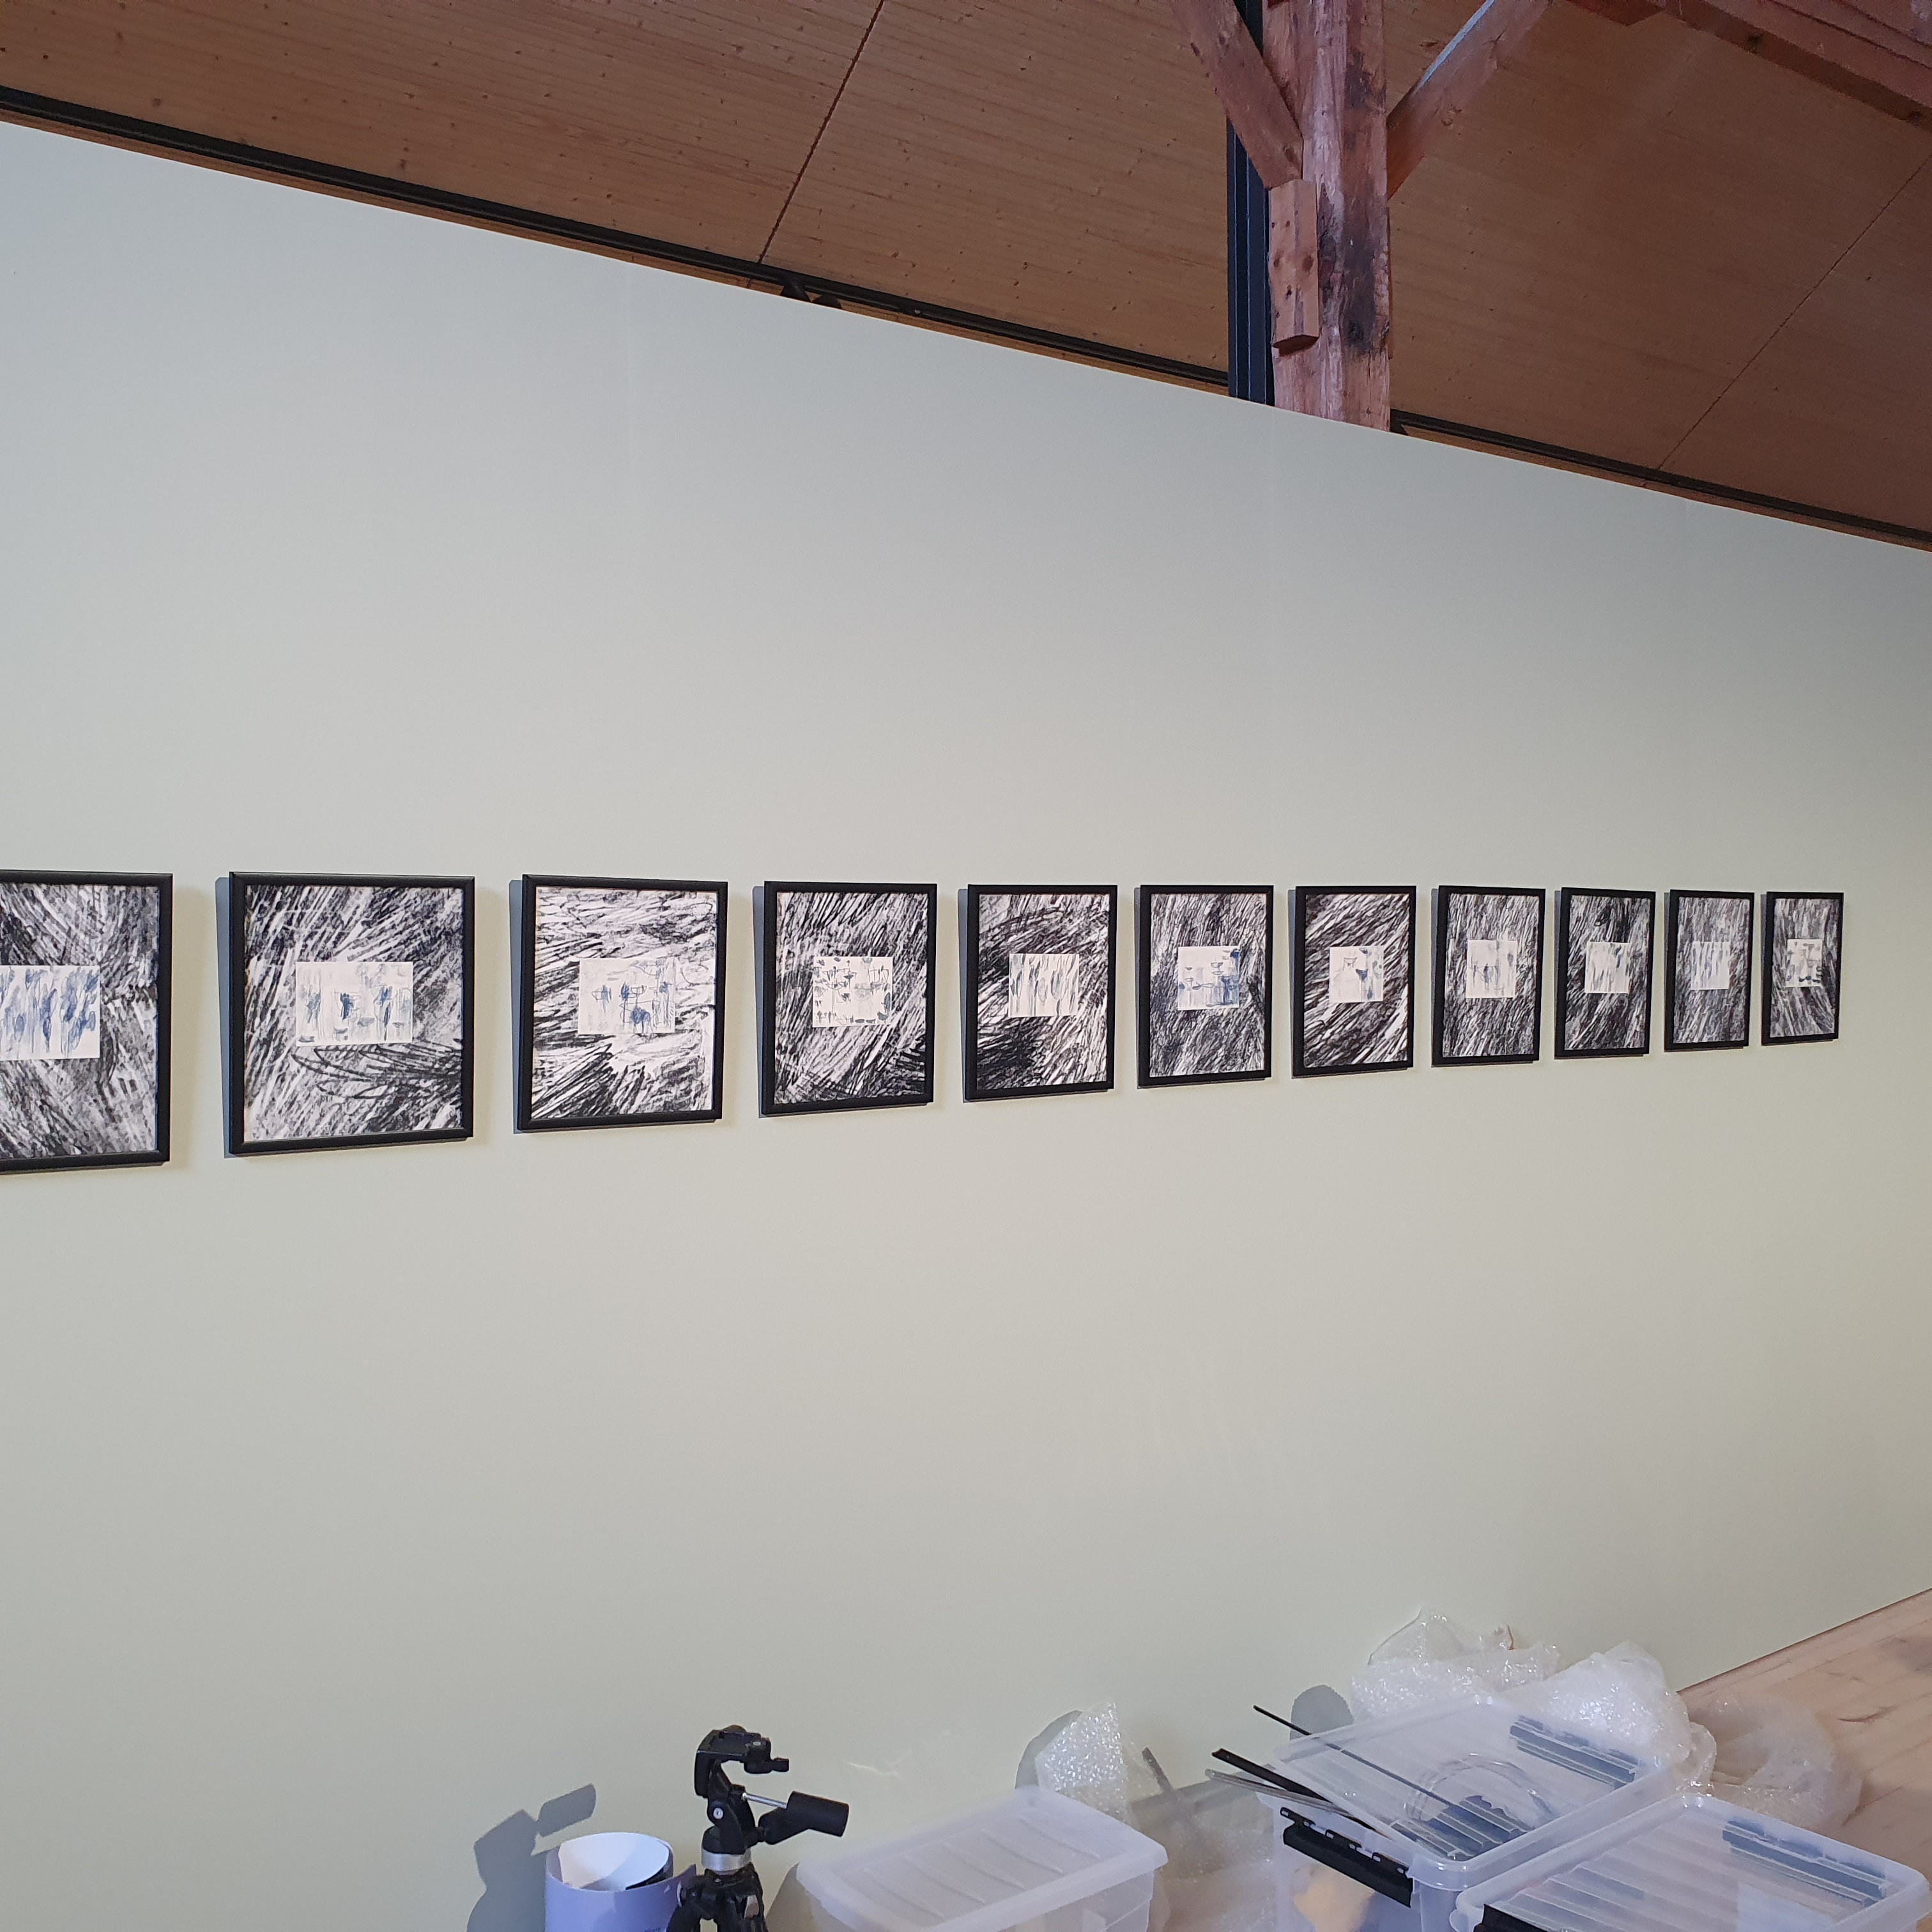 """A row of pictures from the """"Stump of Prometheus – Stay together"""" exhibition hung on the wall in black frames"""